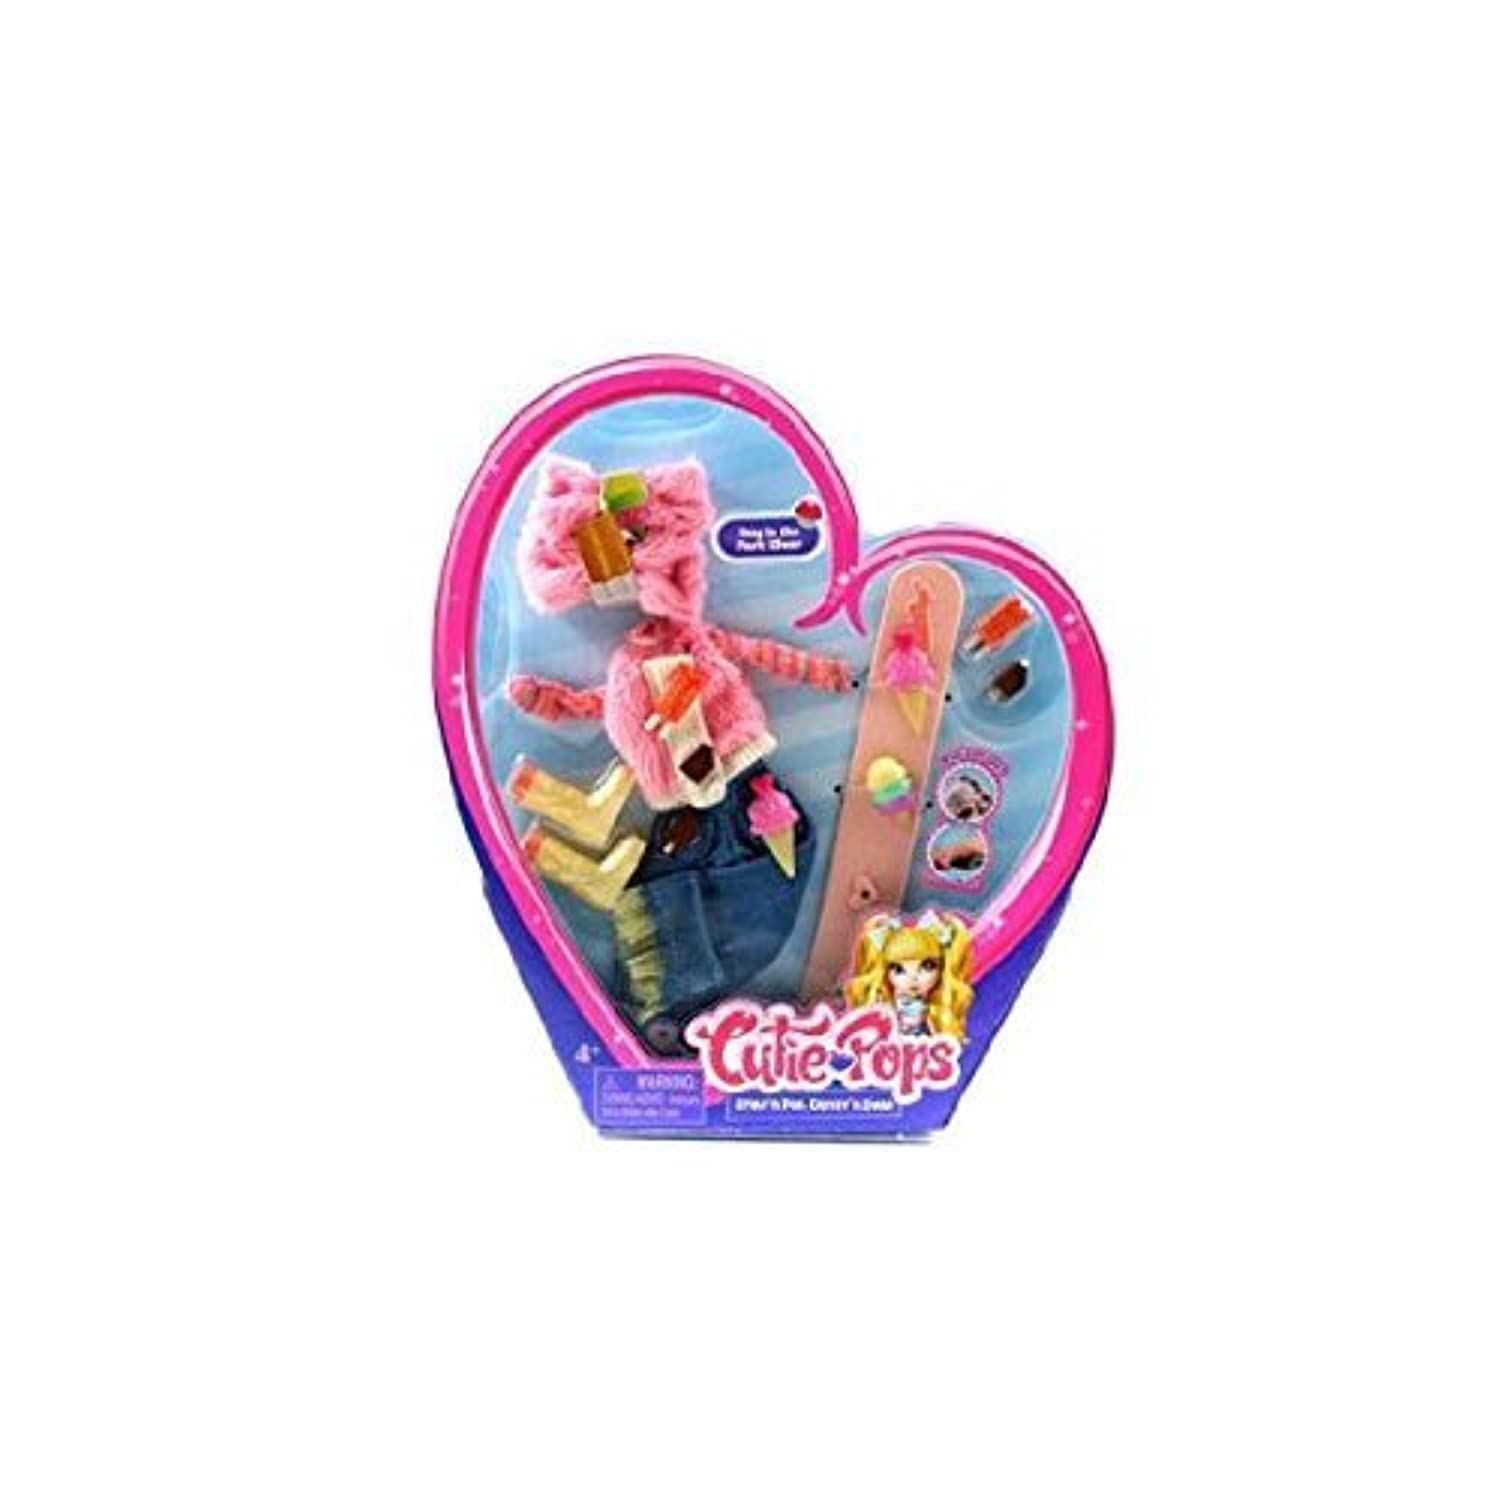 Cutie Pops Dolls Fashion Accessory Pack - Day in the Park Wear